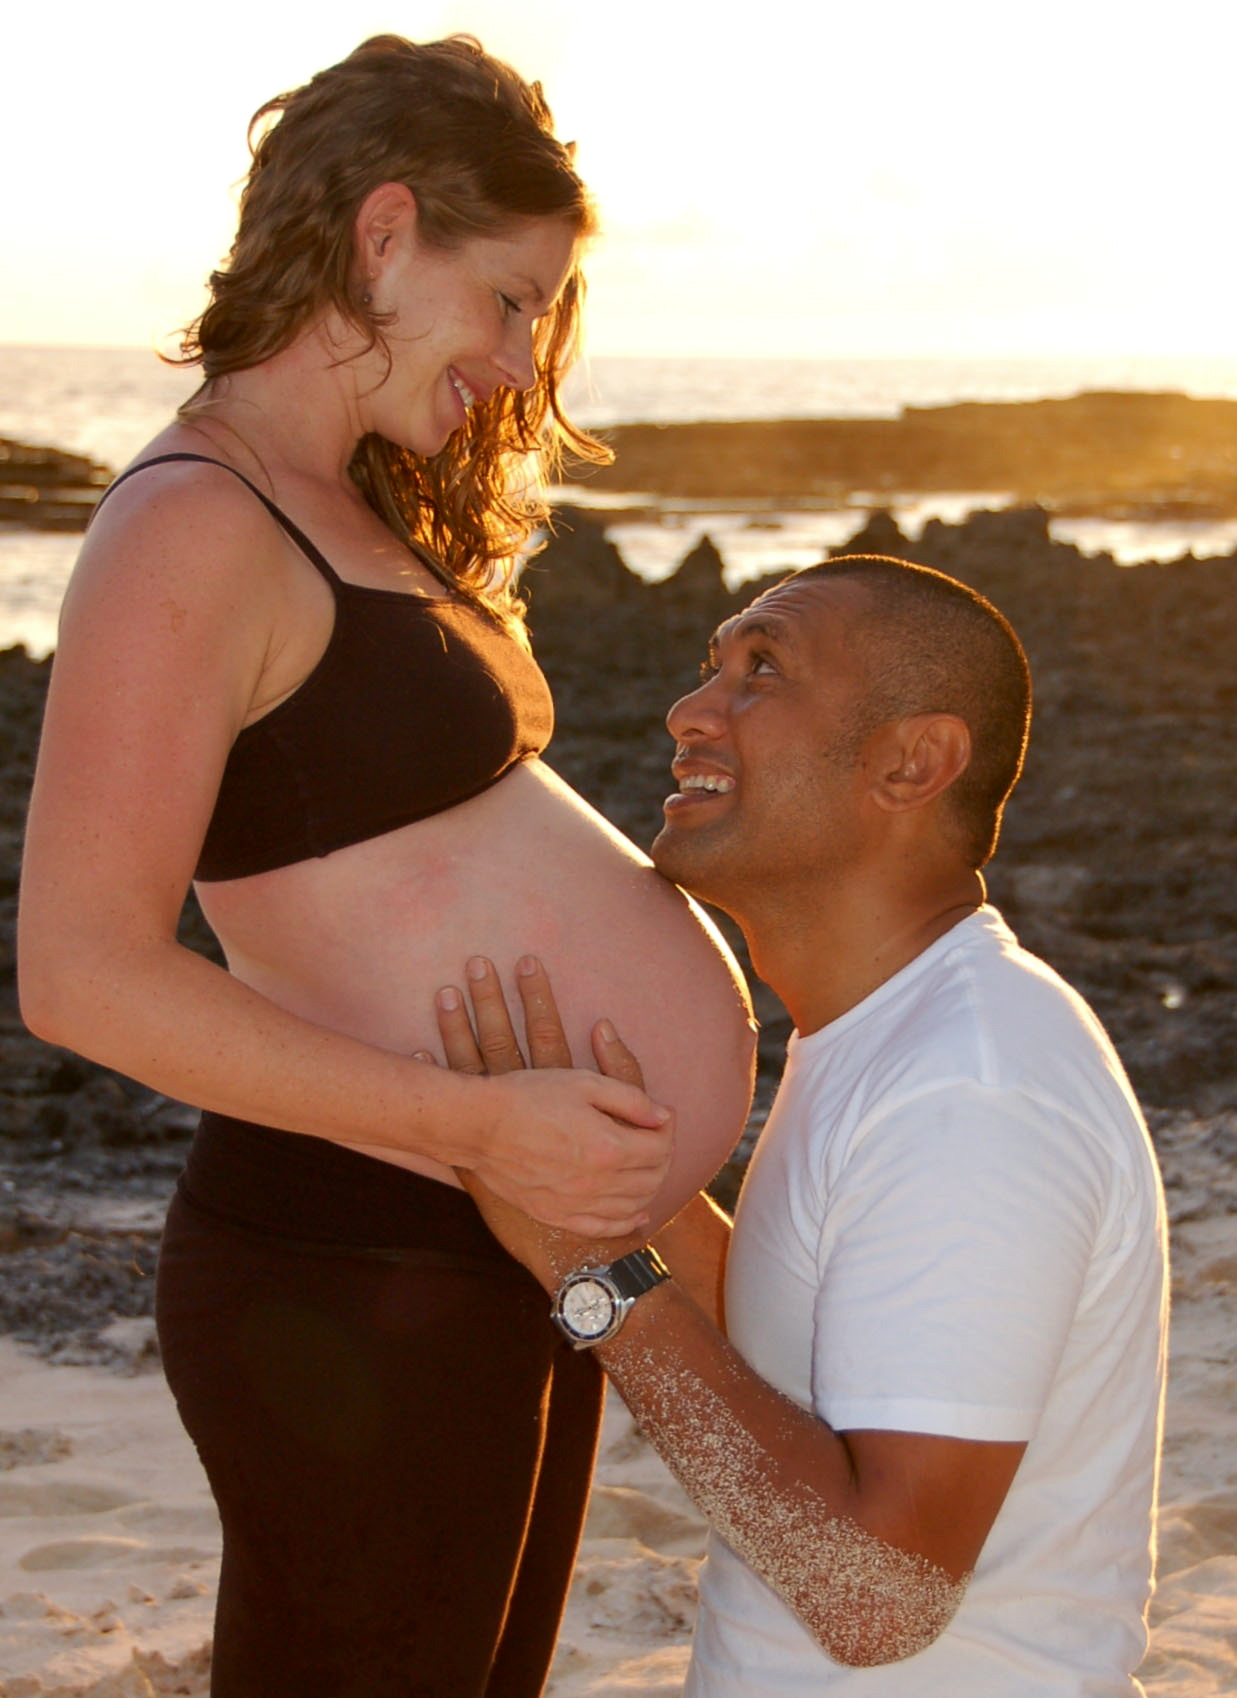 Happy expectant parents – 35 weeks, © J.L. McCreedy